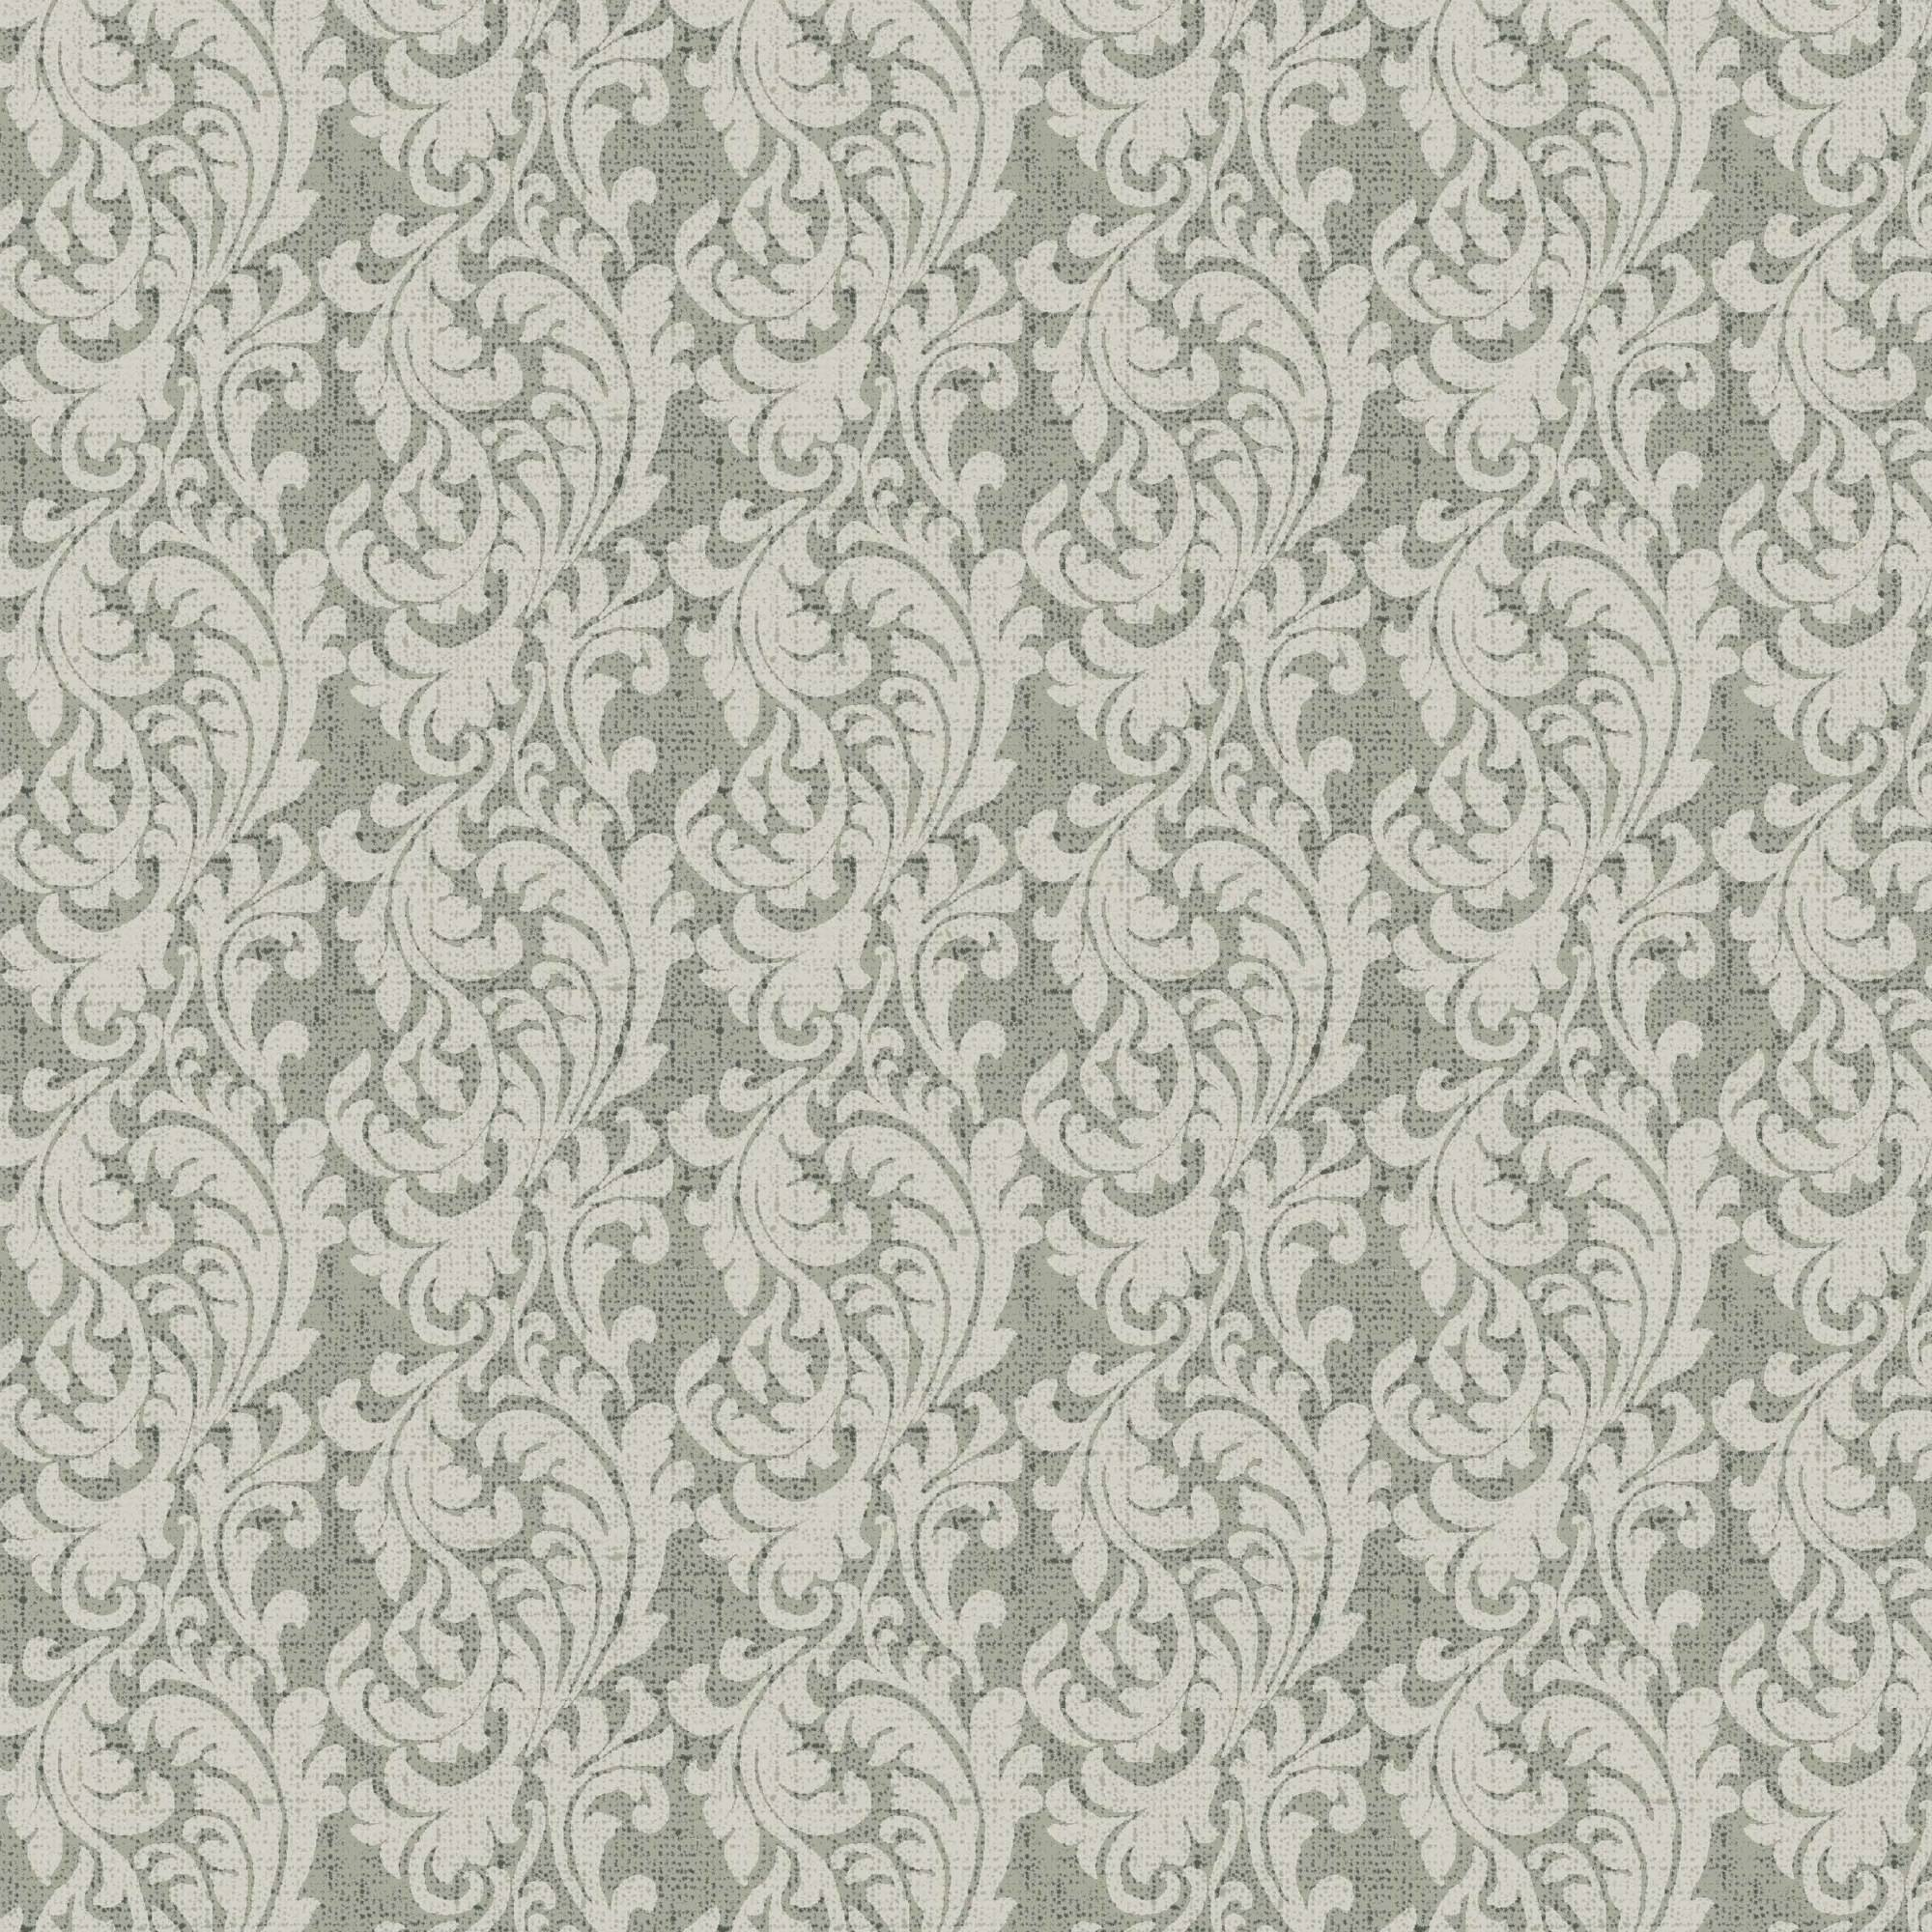 Waverly Inspirations PAIS SCRL GRAY 100% Cotton duck fabric, Quilting fabric, Home Decor ,54'', 220GSM